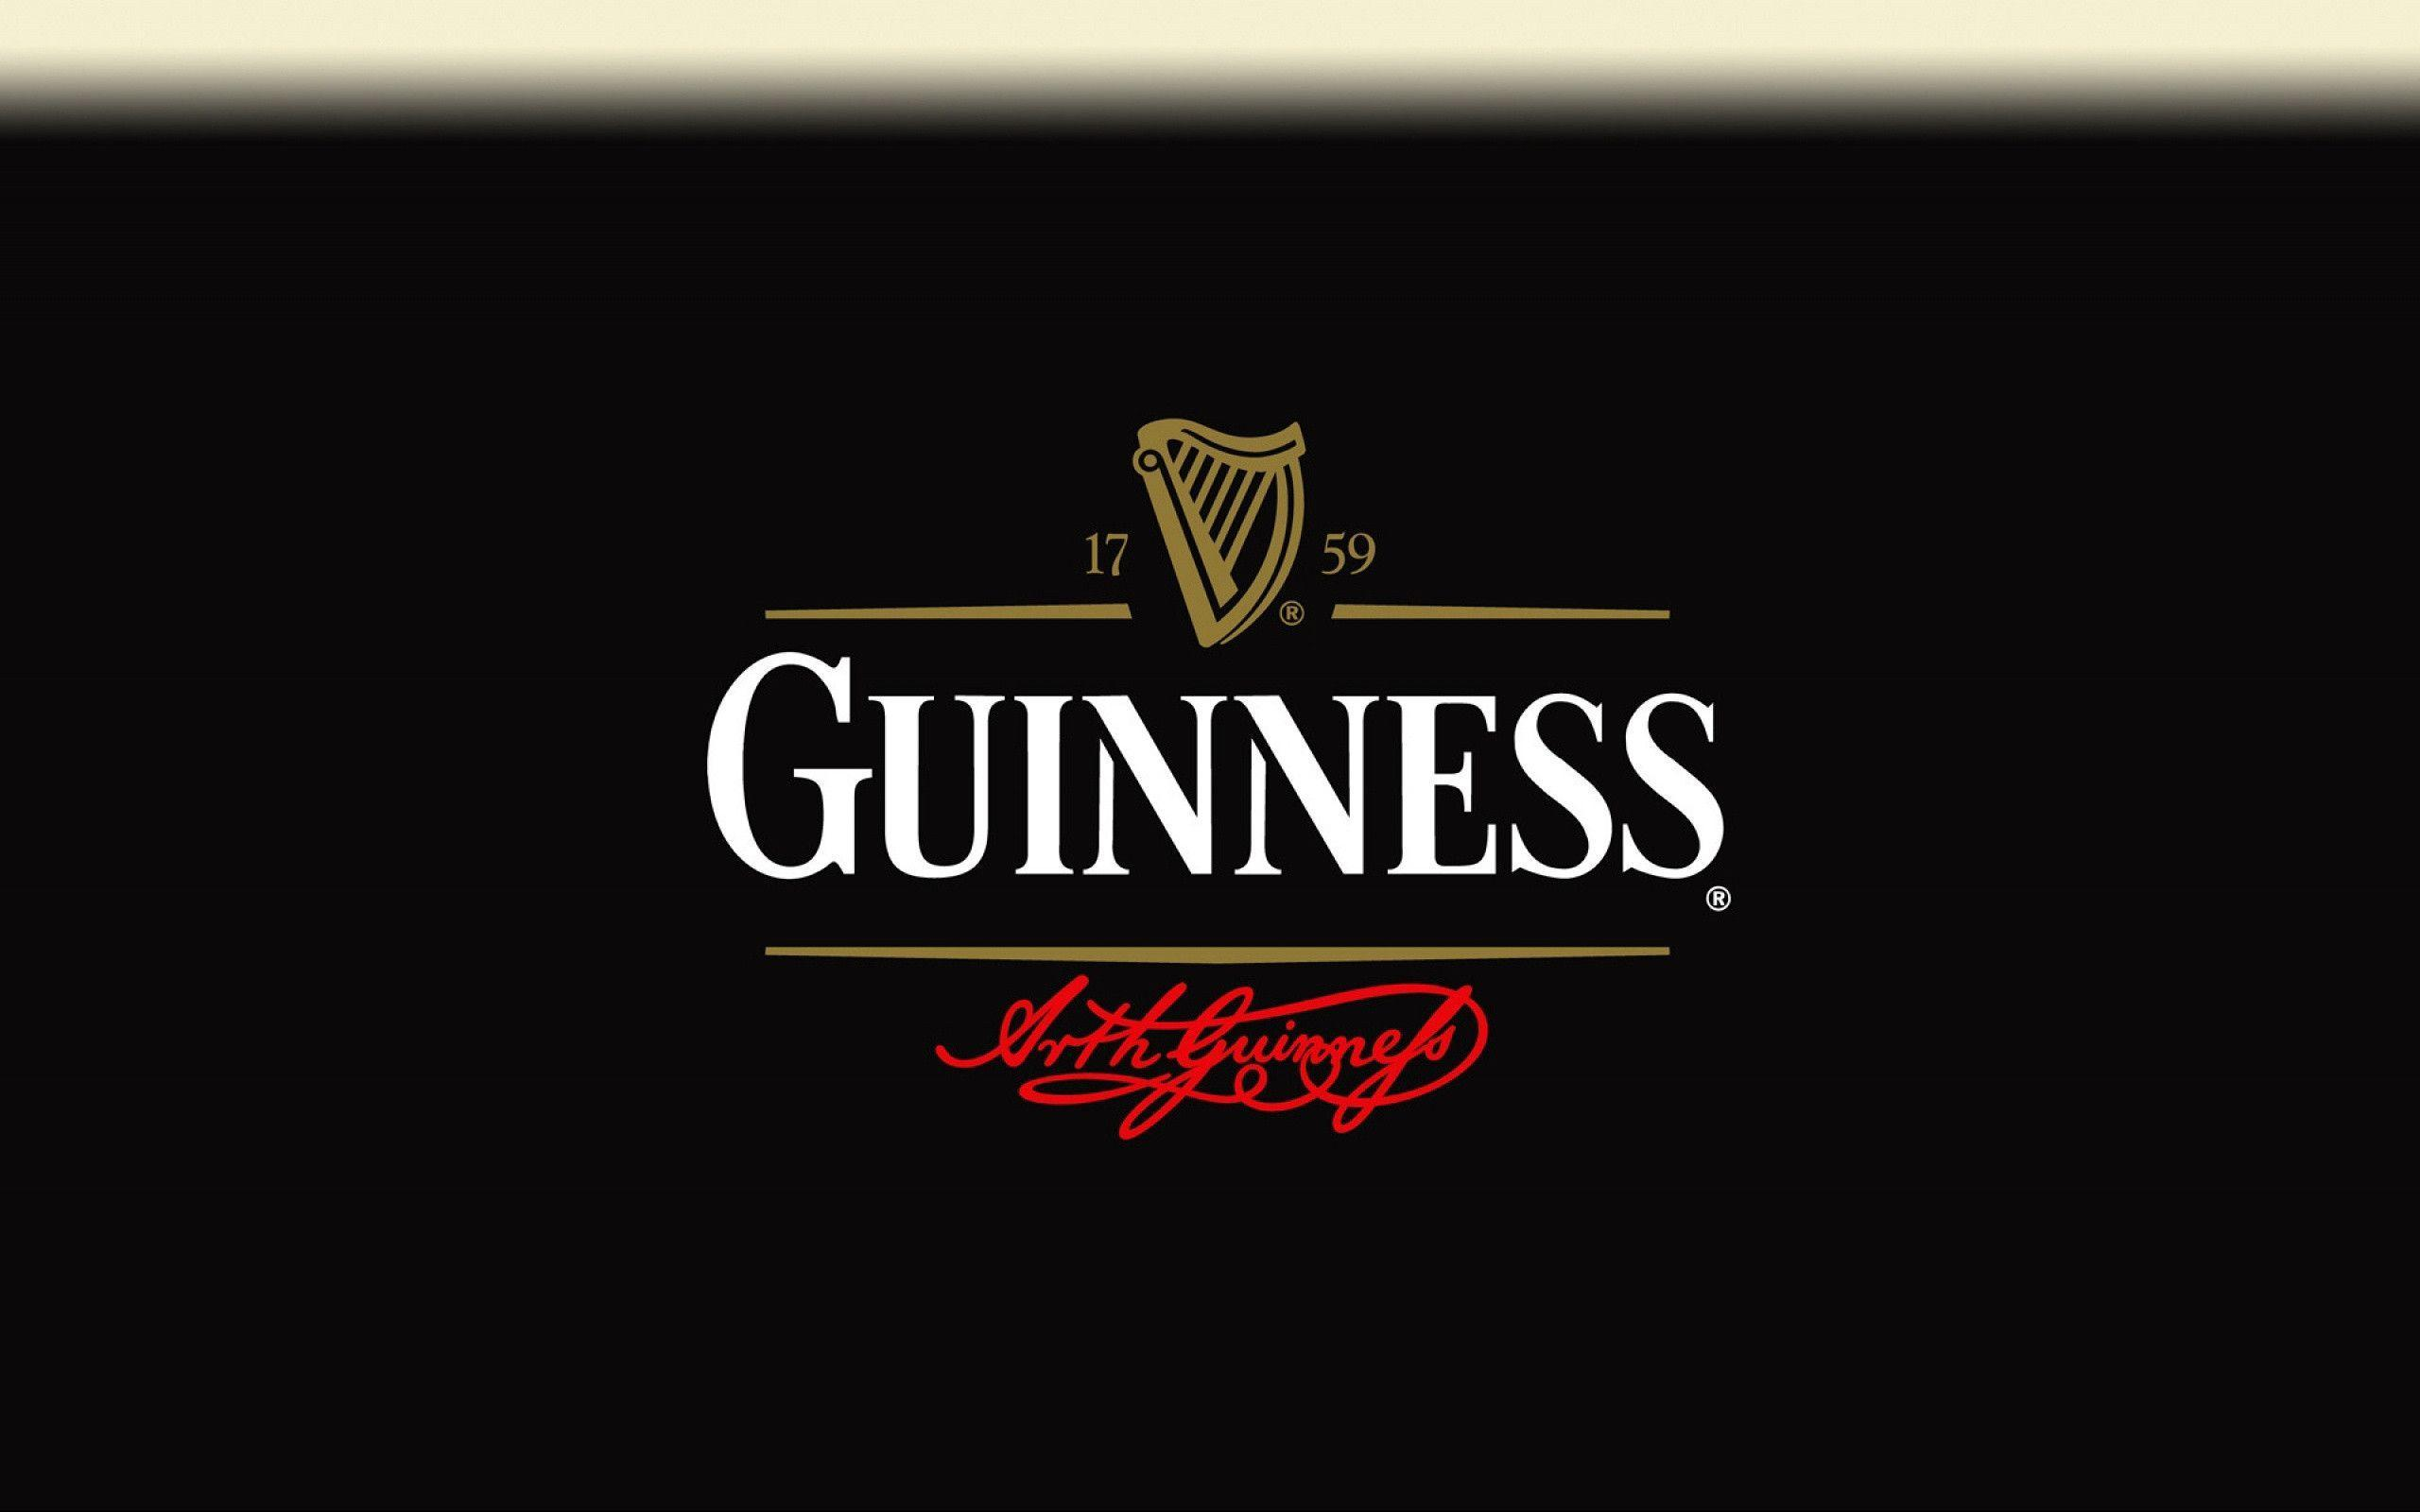 Guinness Beer Wallpapers - Wallpaper Cave